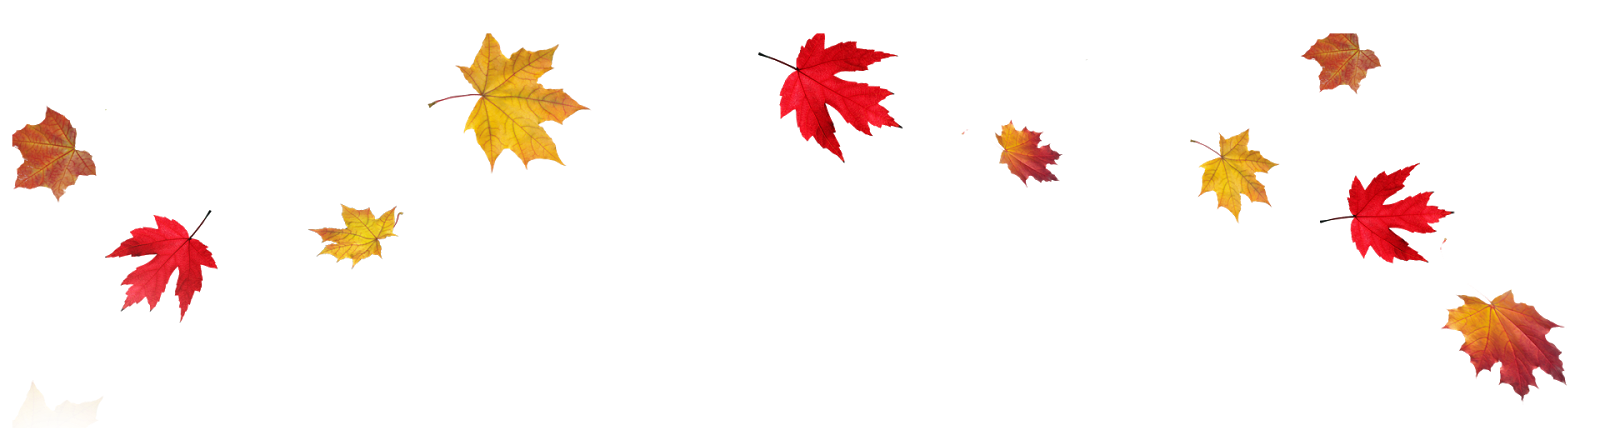 Transparent-Fall-Leaves-Border-PNG